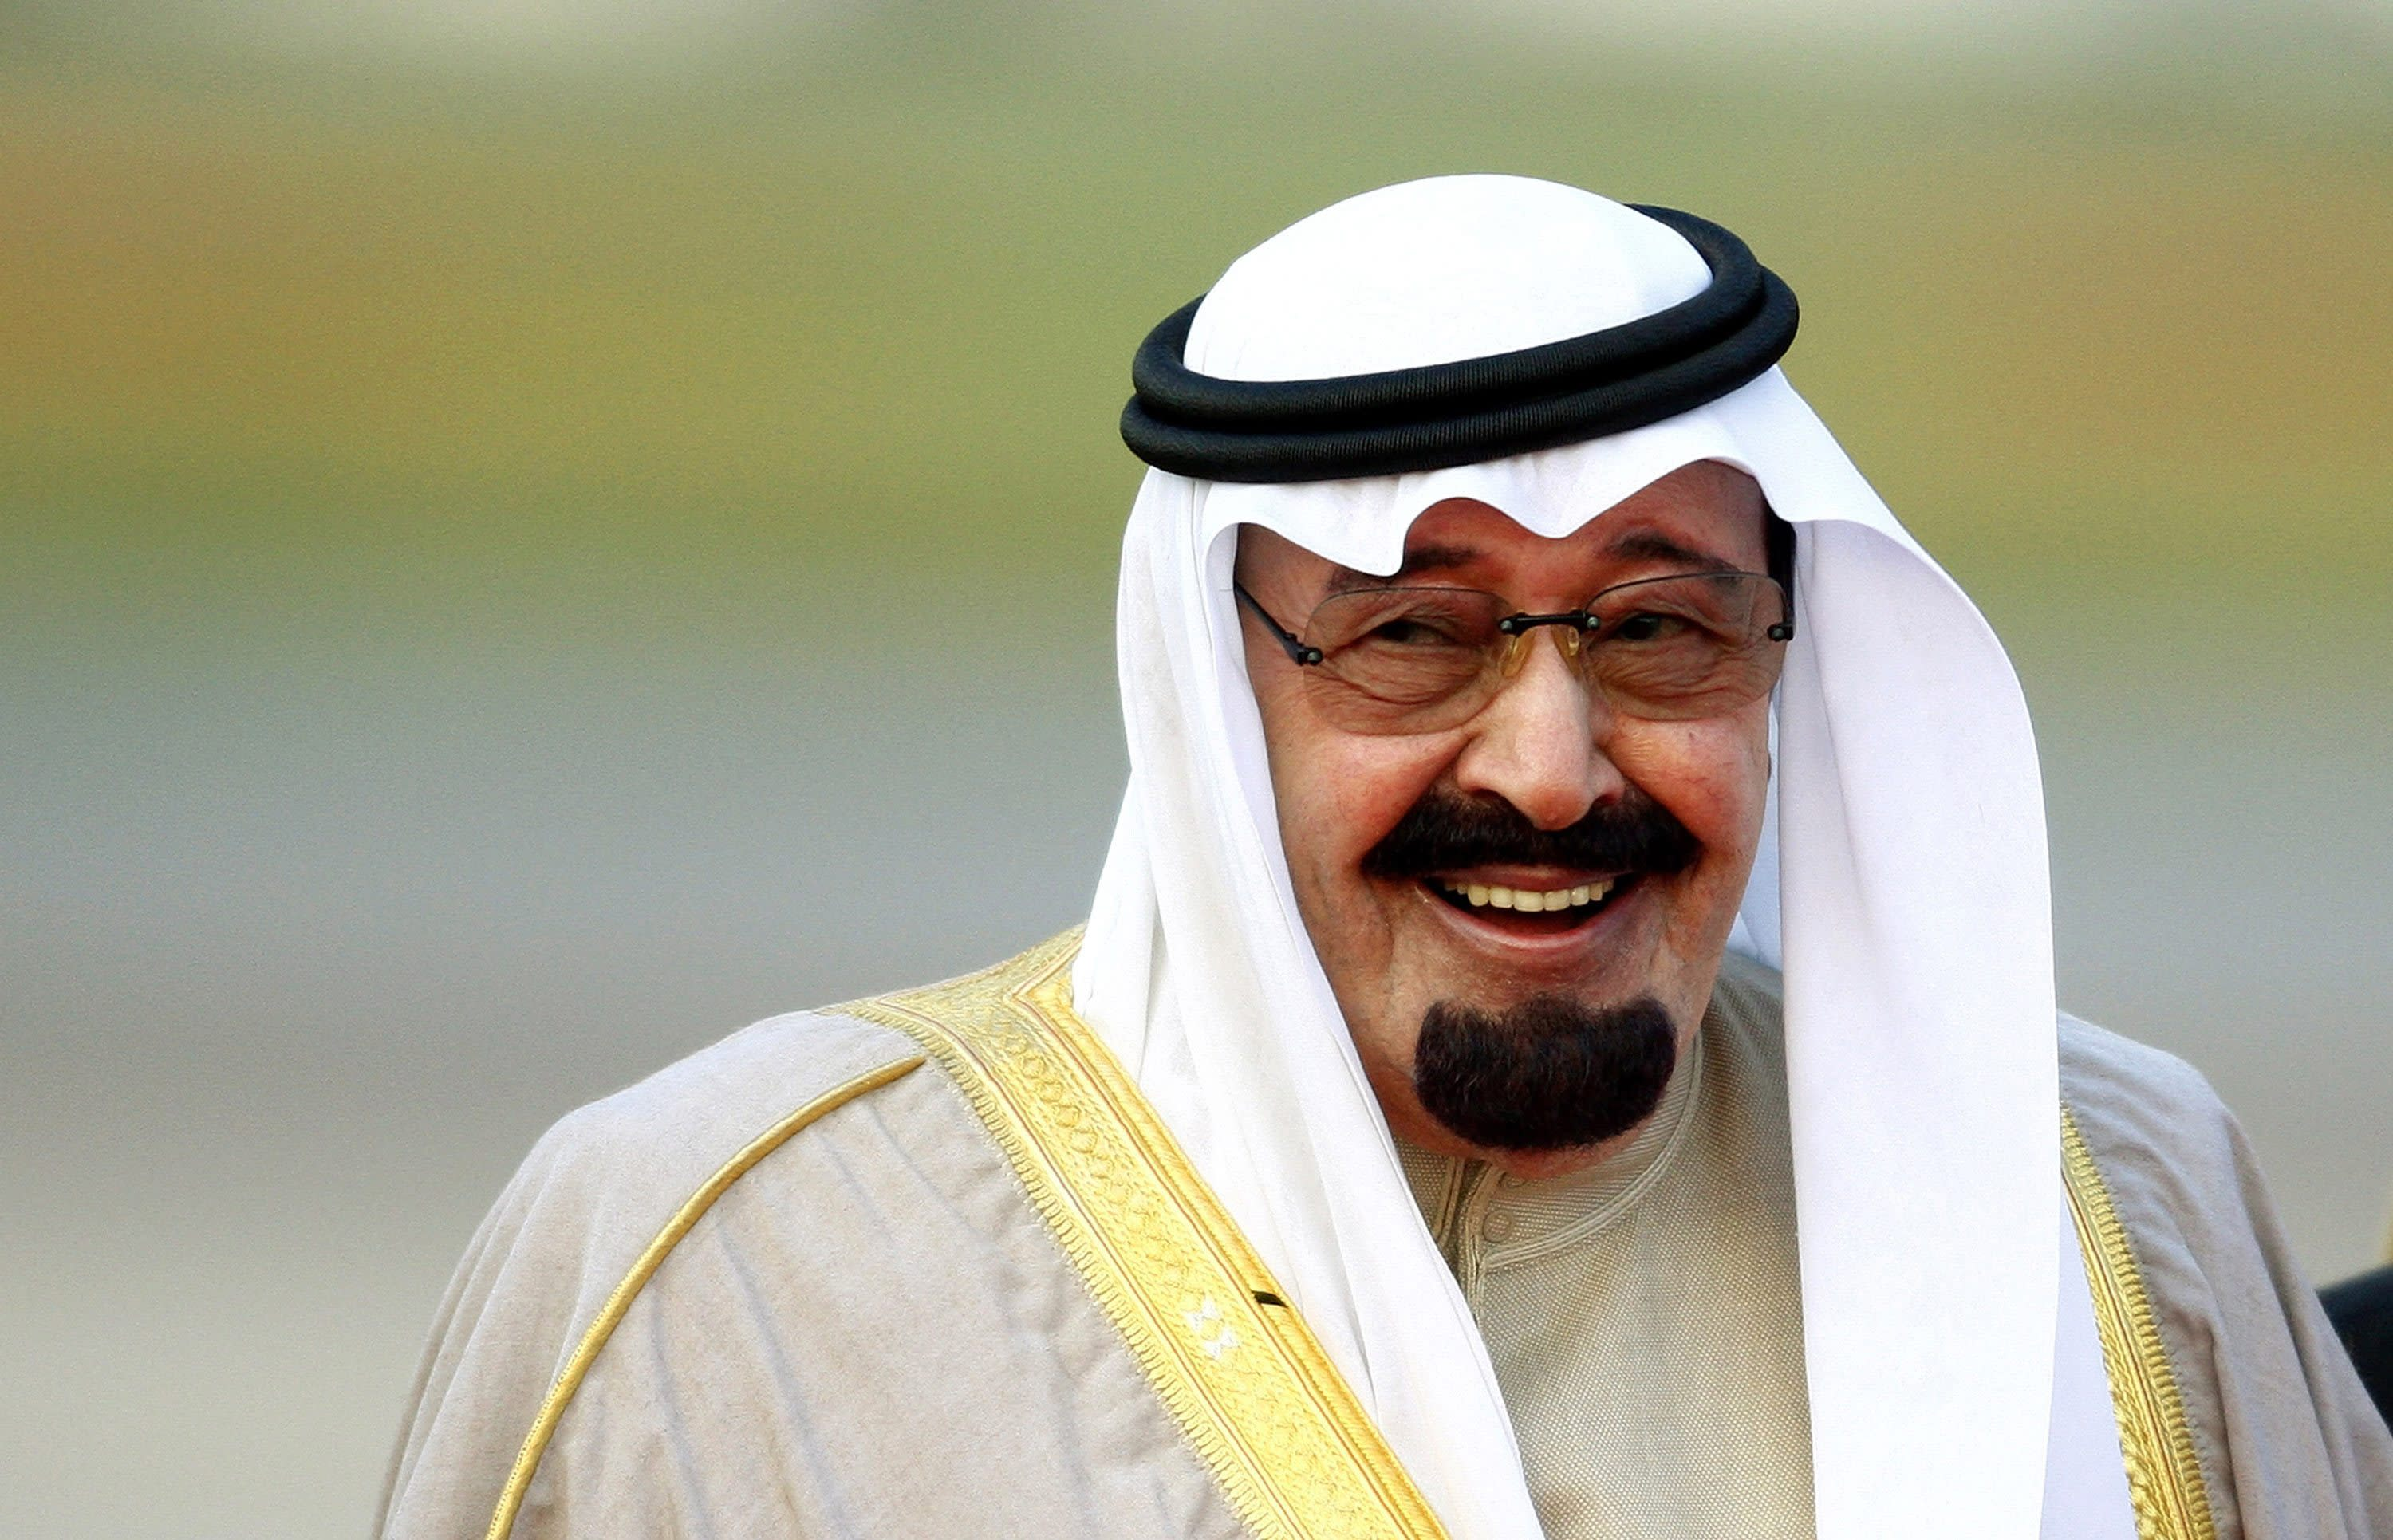 Saudi Arabia's King Abdullah has died at age 90